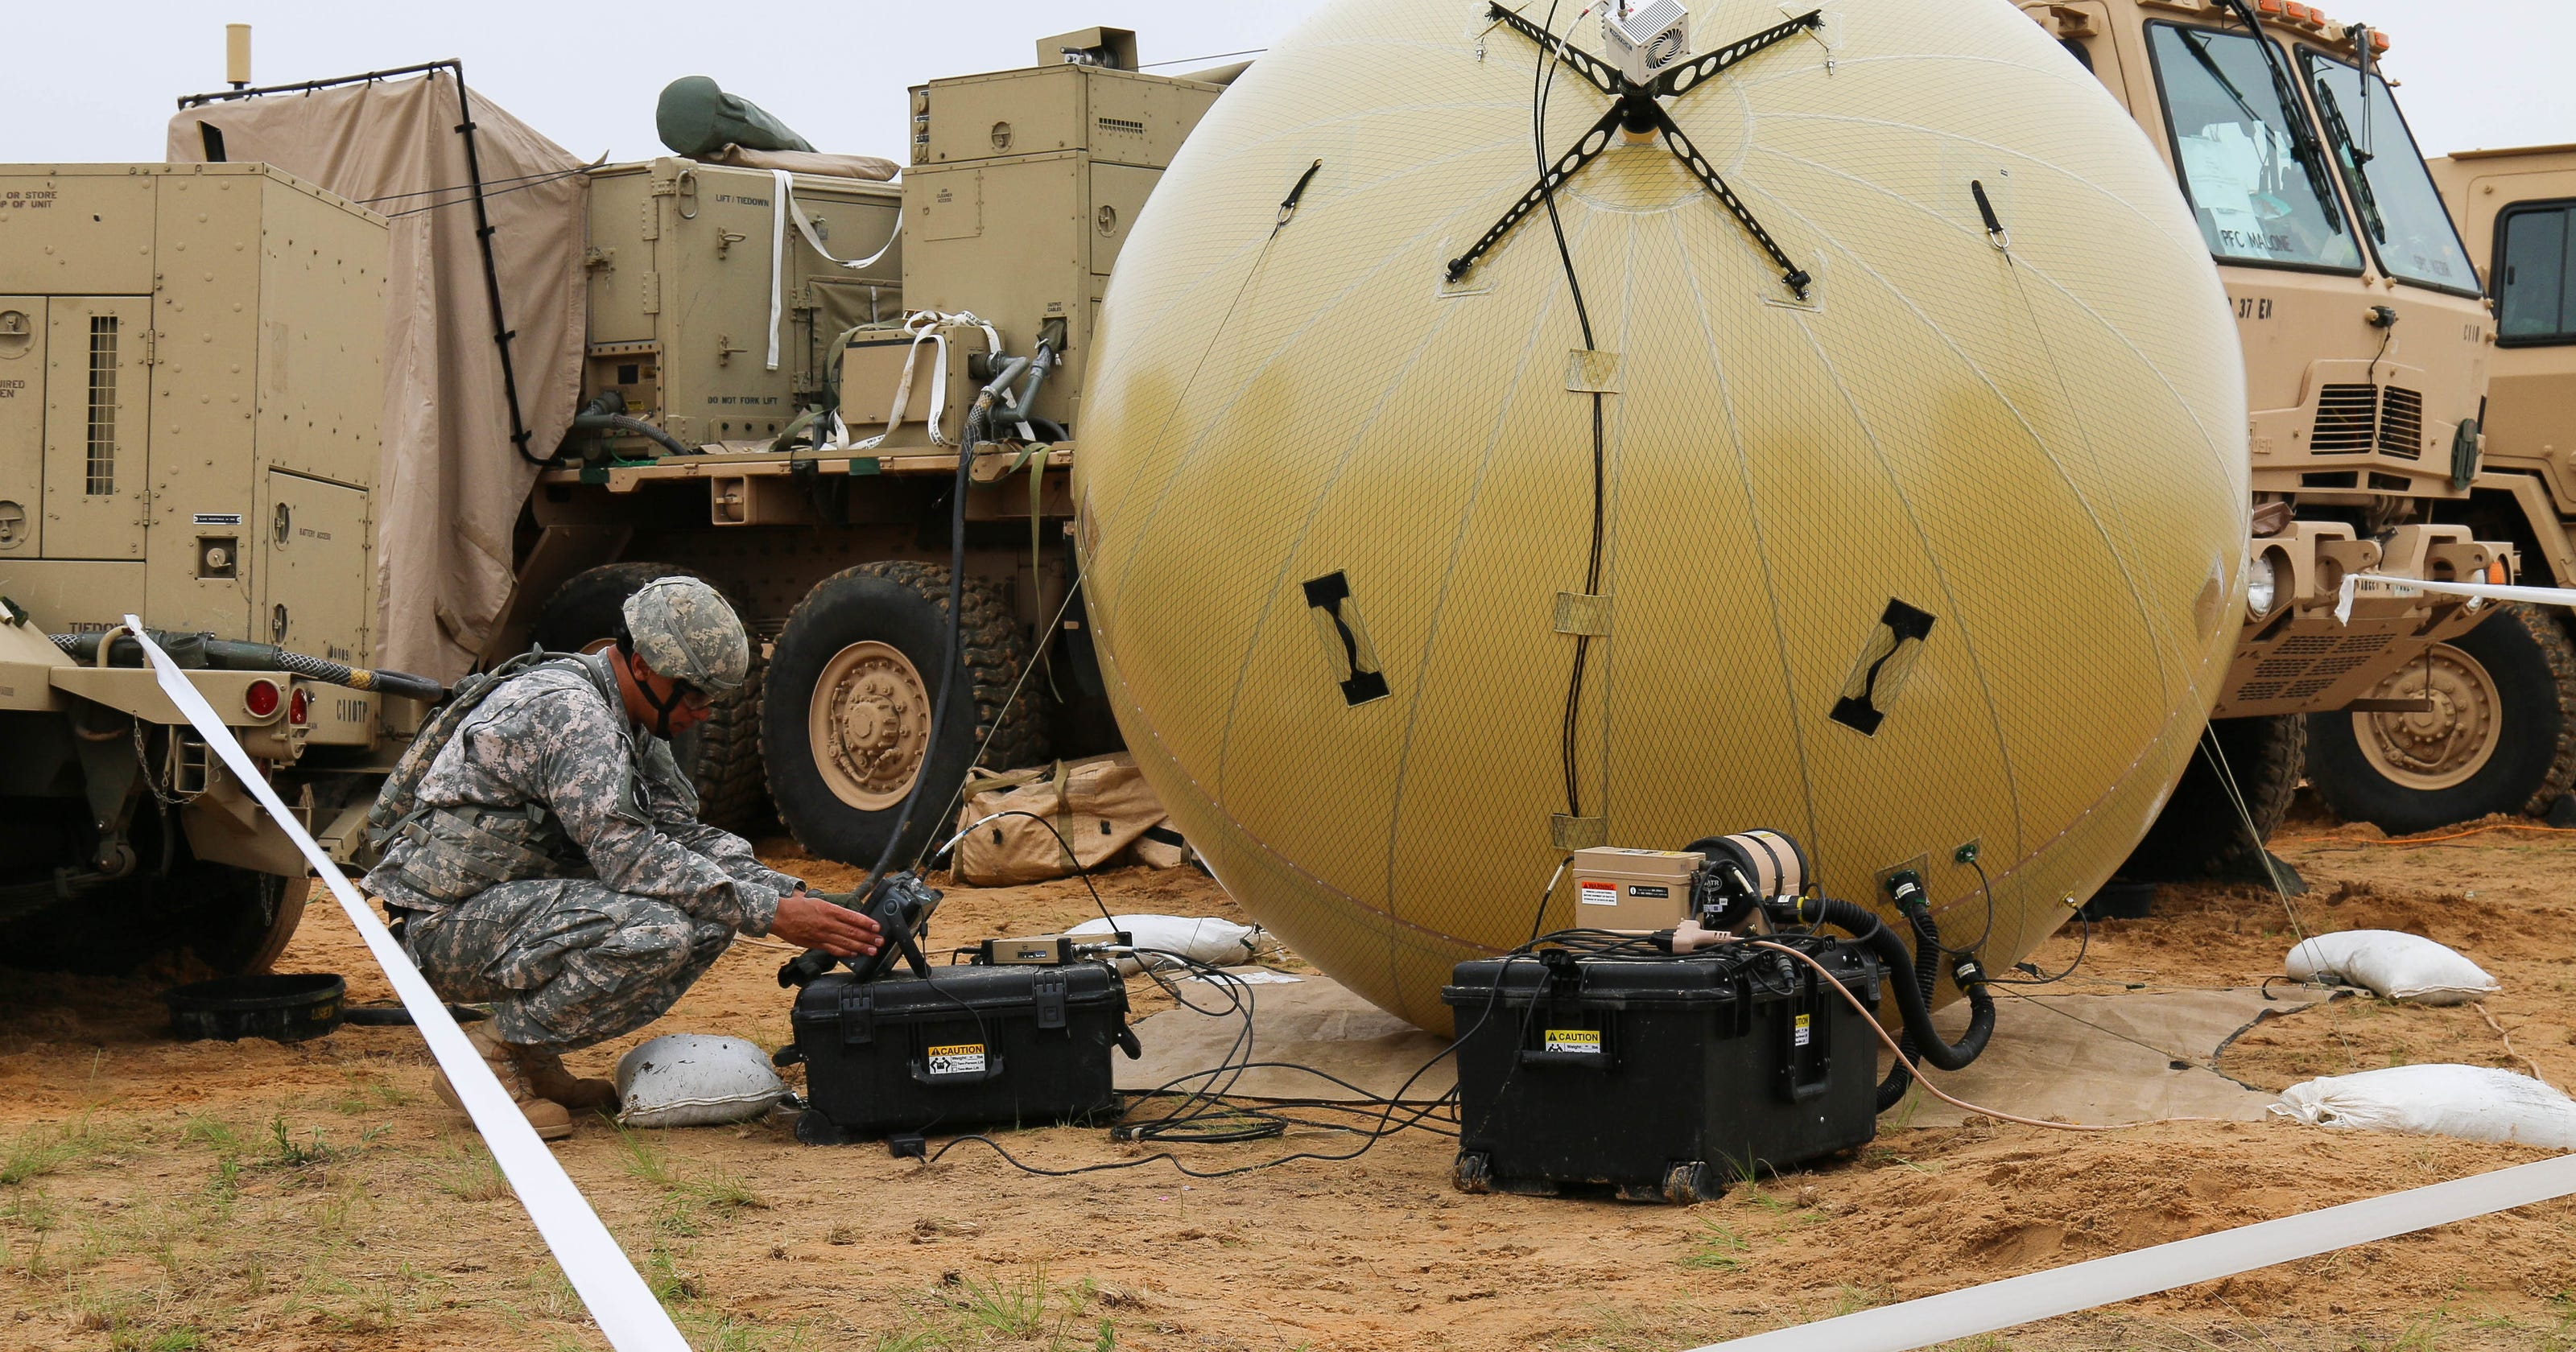 communication system operators Browse 436,153+ satellite communication systems operator maintainer jobs ($28k-$64k) hiring now from companies with openings find your next job near you & 1-click apply.